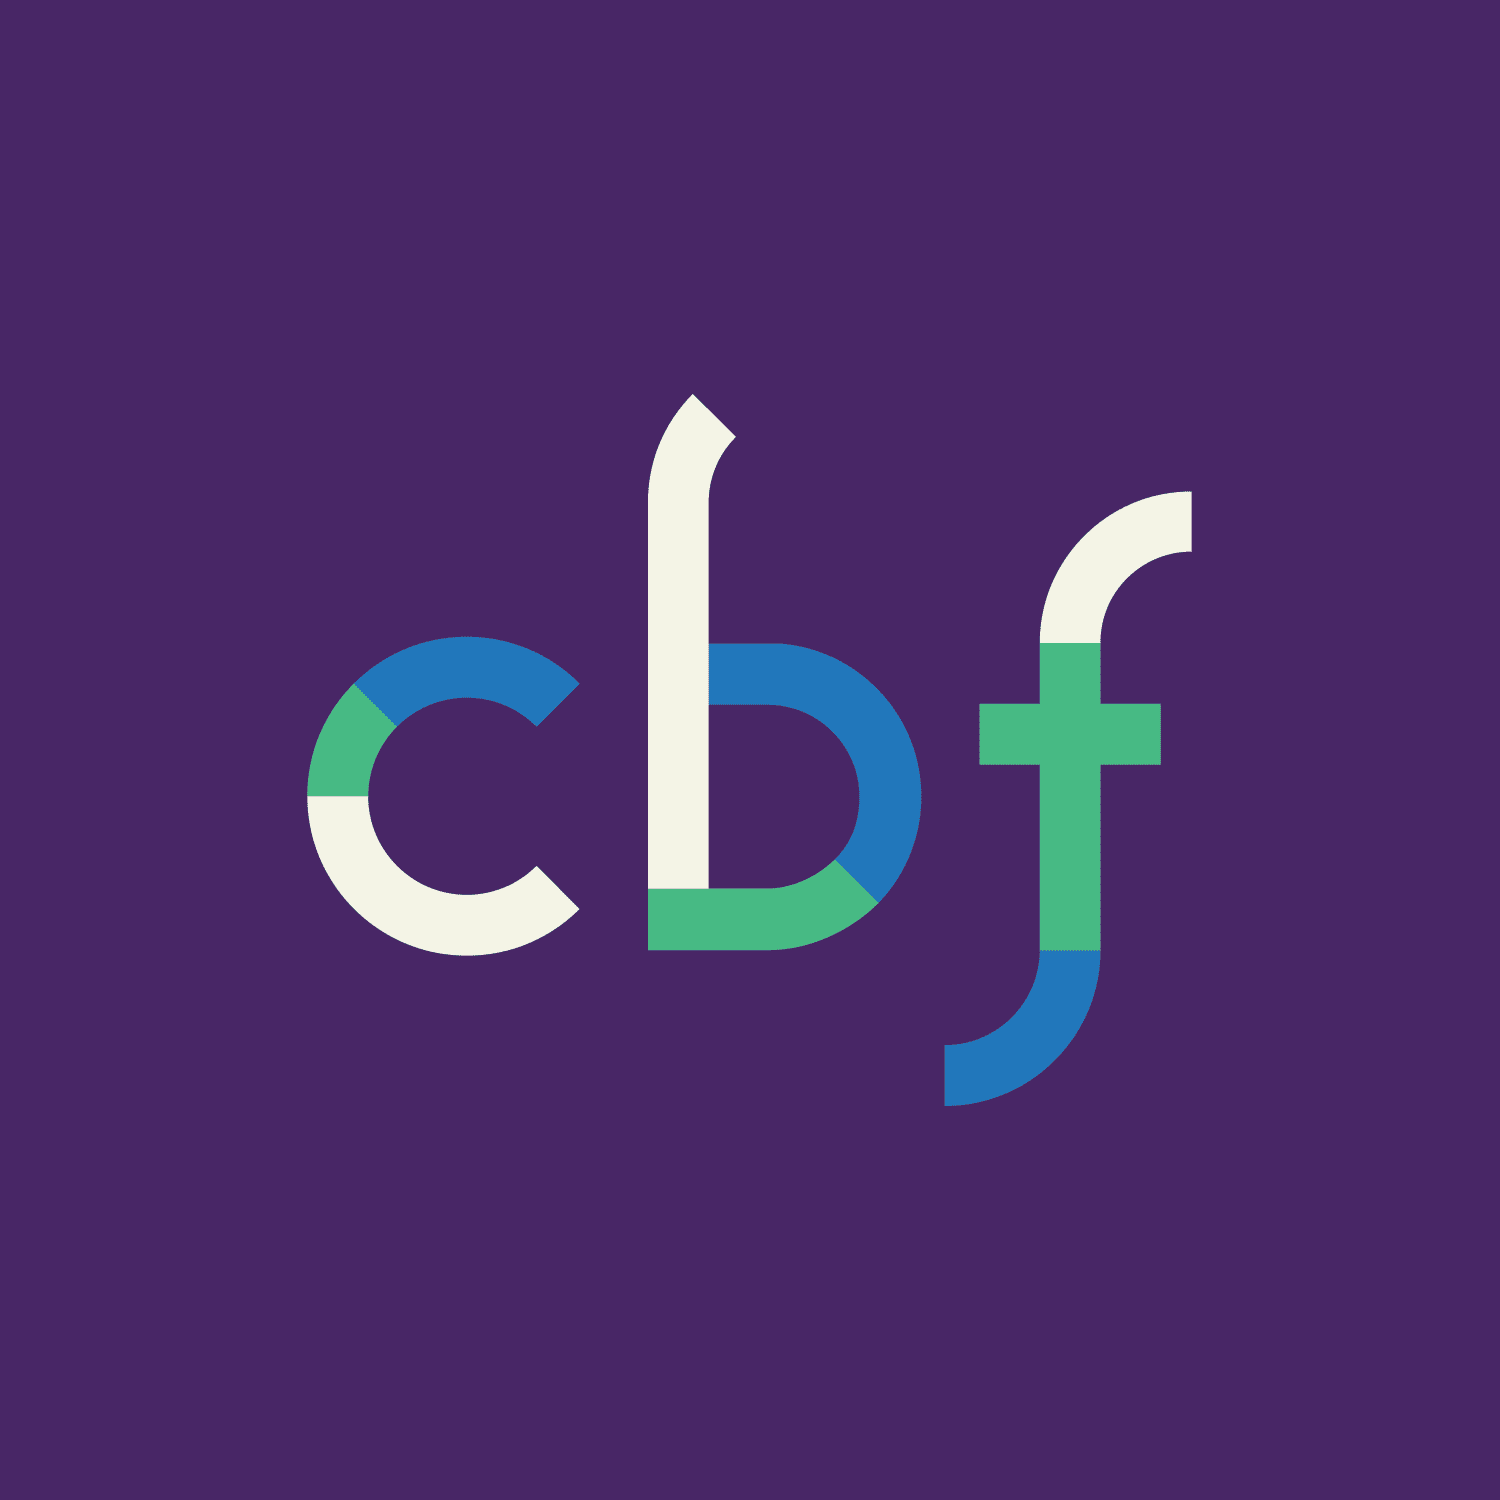 Cooperative Baptist Fellowship logo with purple background